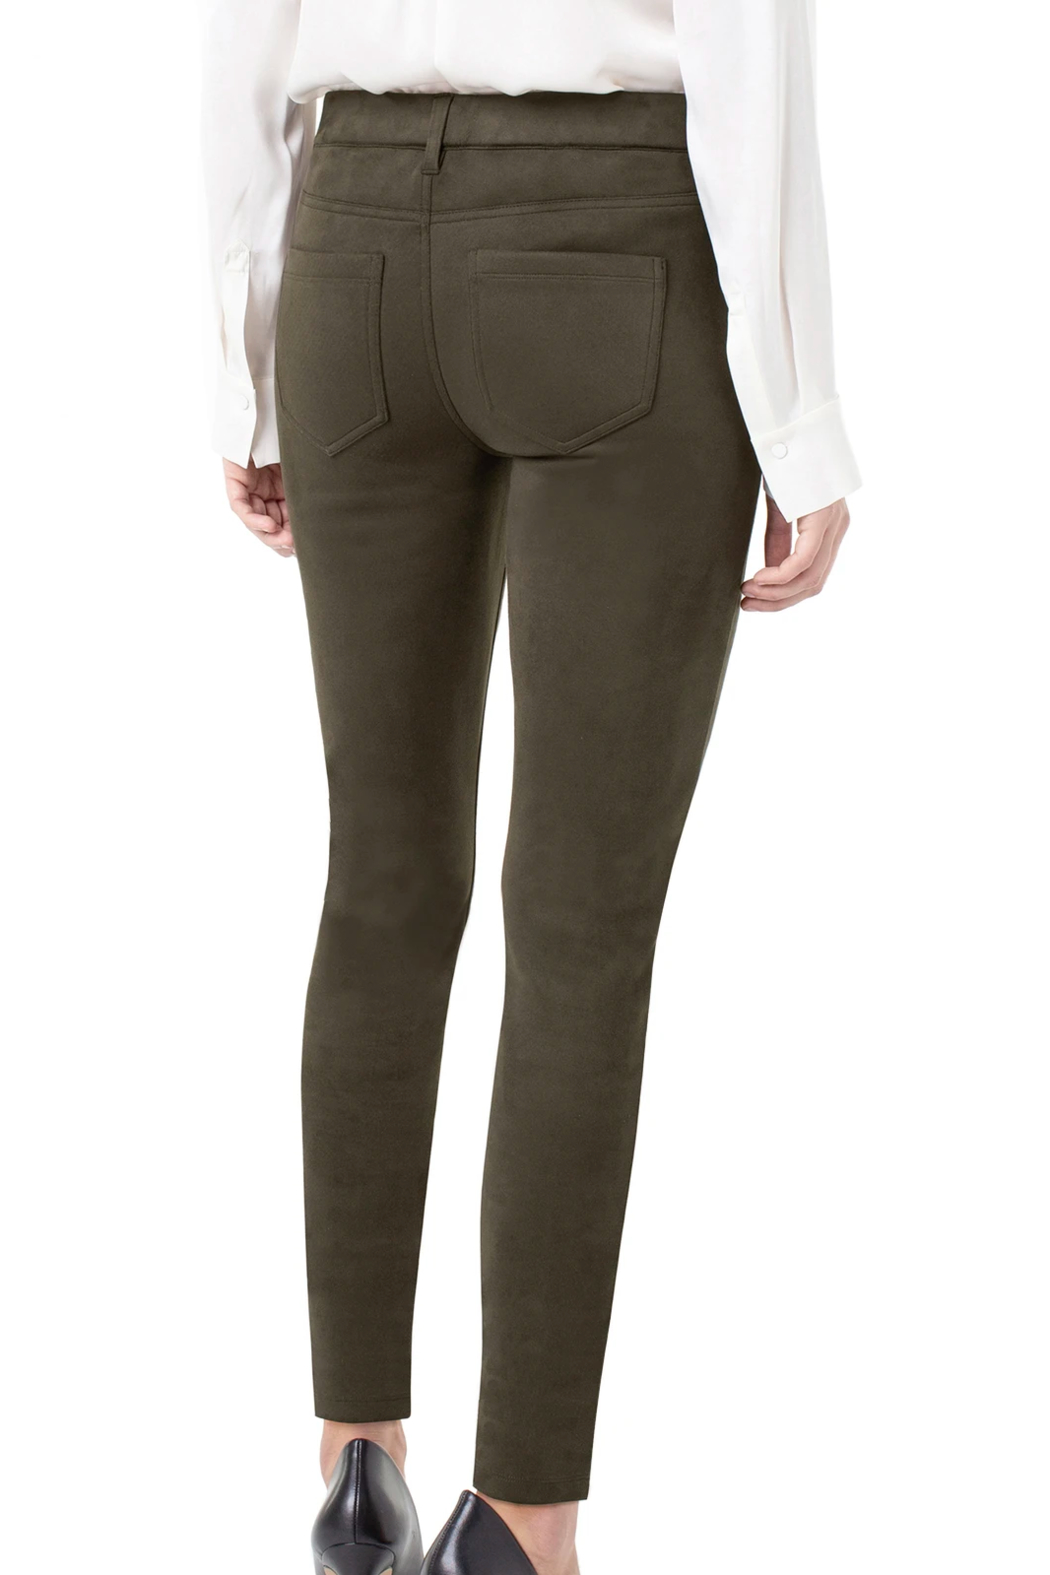 Liverpool Gia Faux-suede Skinnypant - Front Full Image